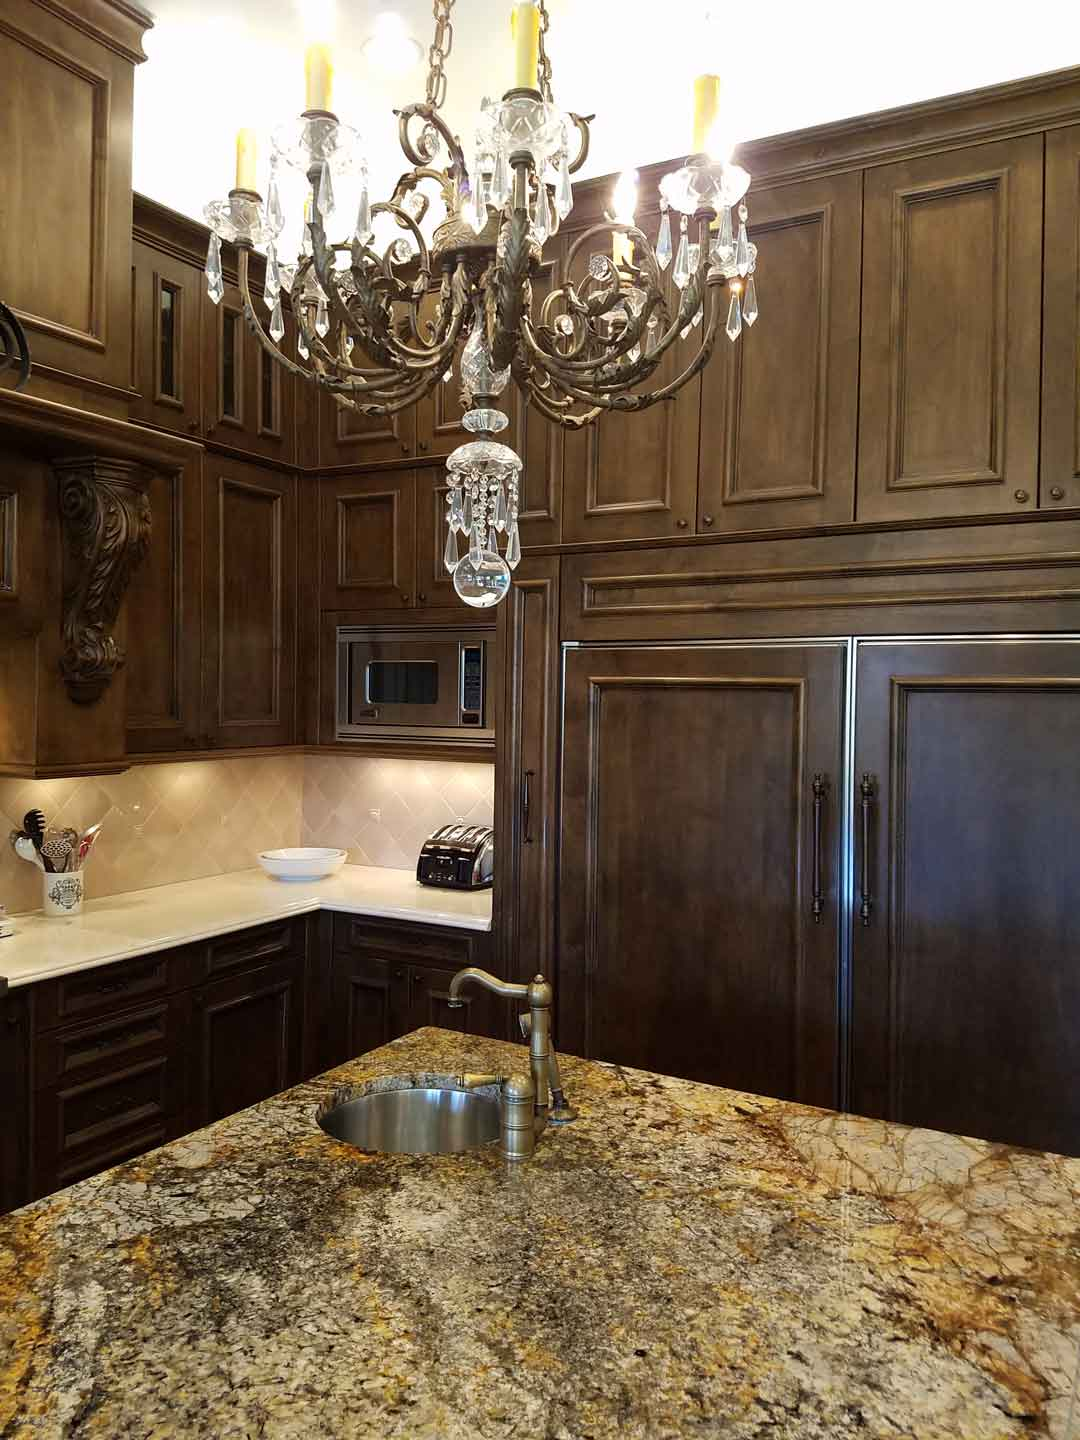 kitchen-island-granite-top-with-burnished-copper-faucet-and-custom-cabinetry-with-fly-flec